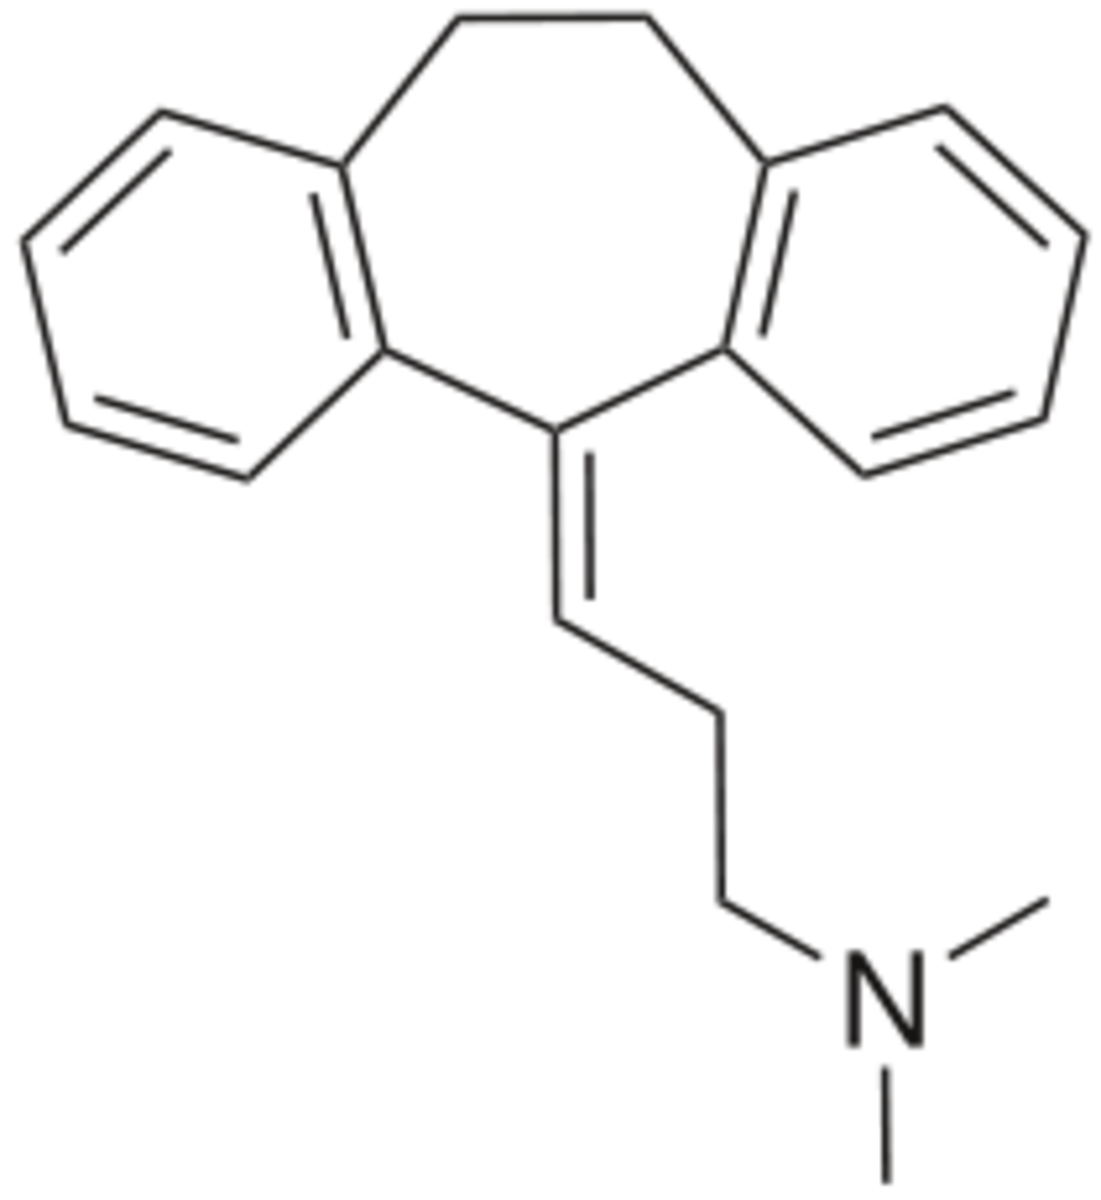 Chemical structure of amitriptlyine.